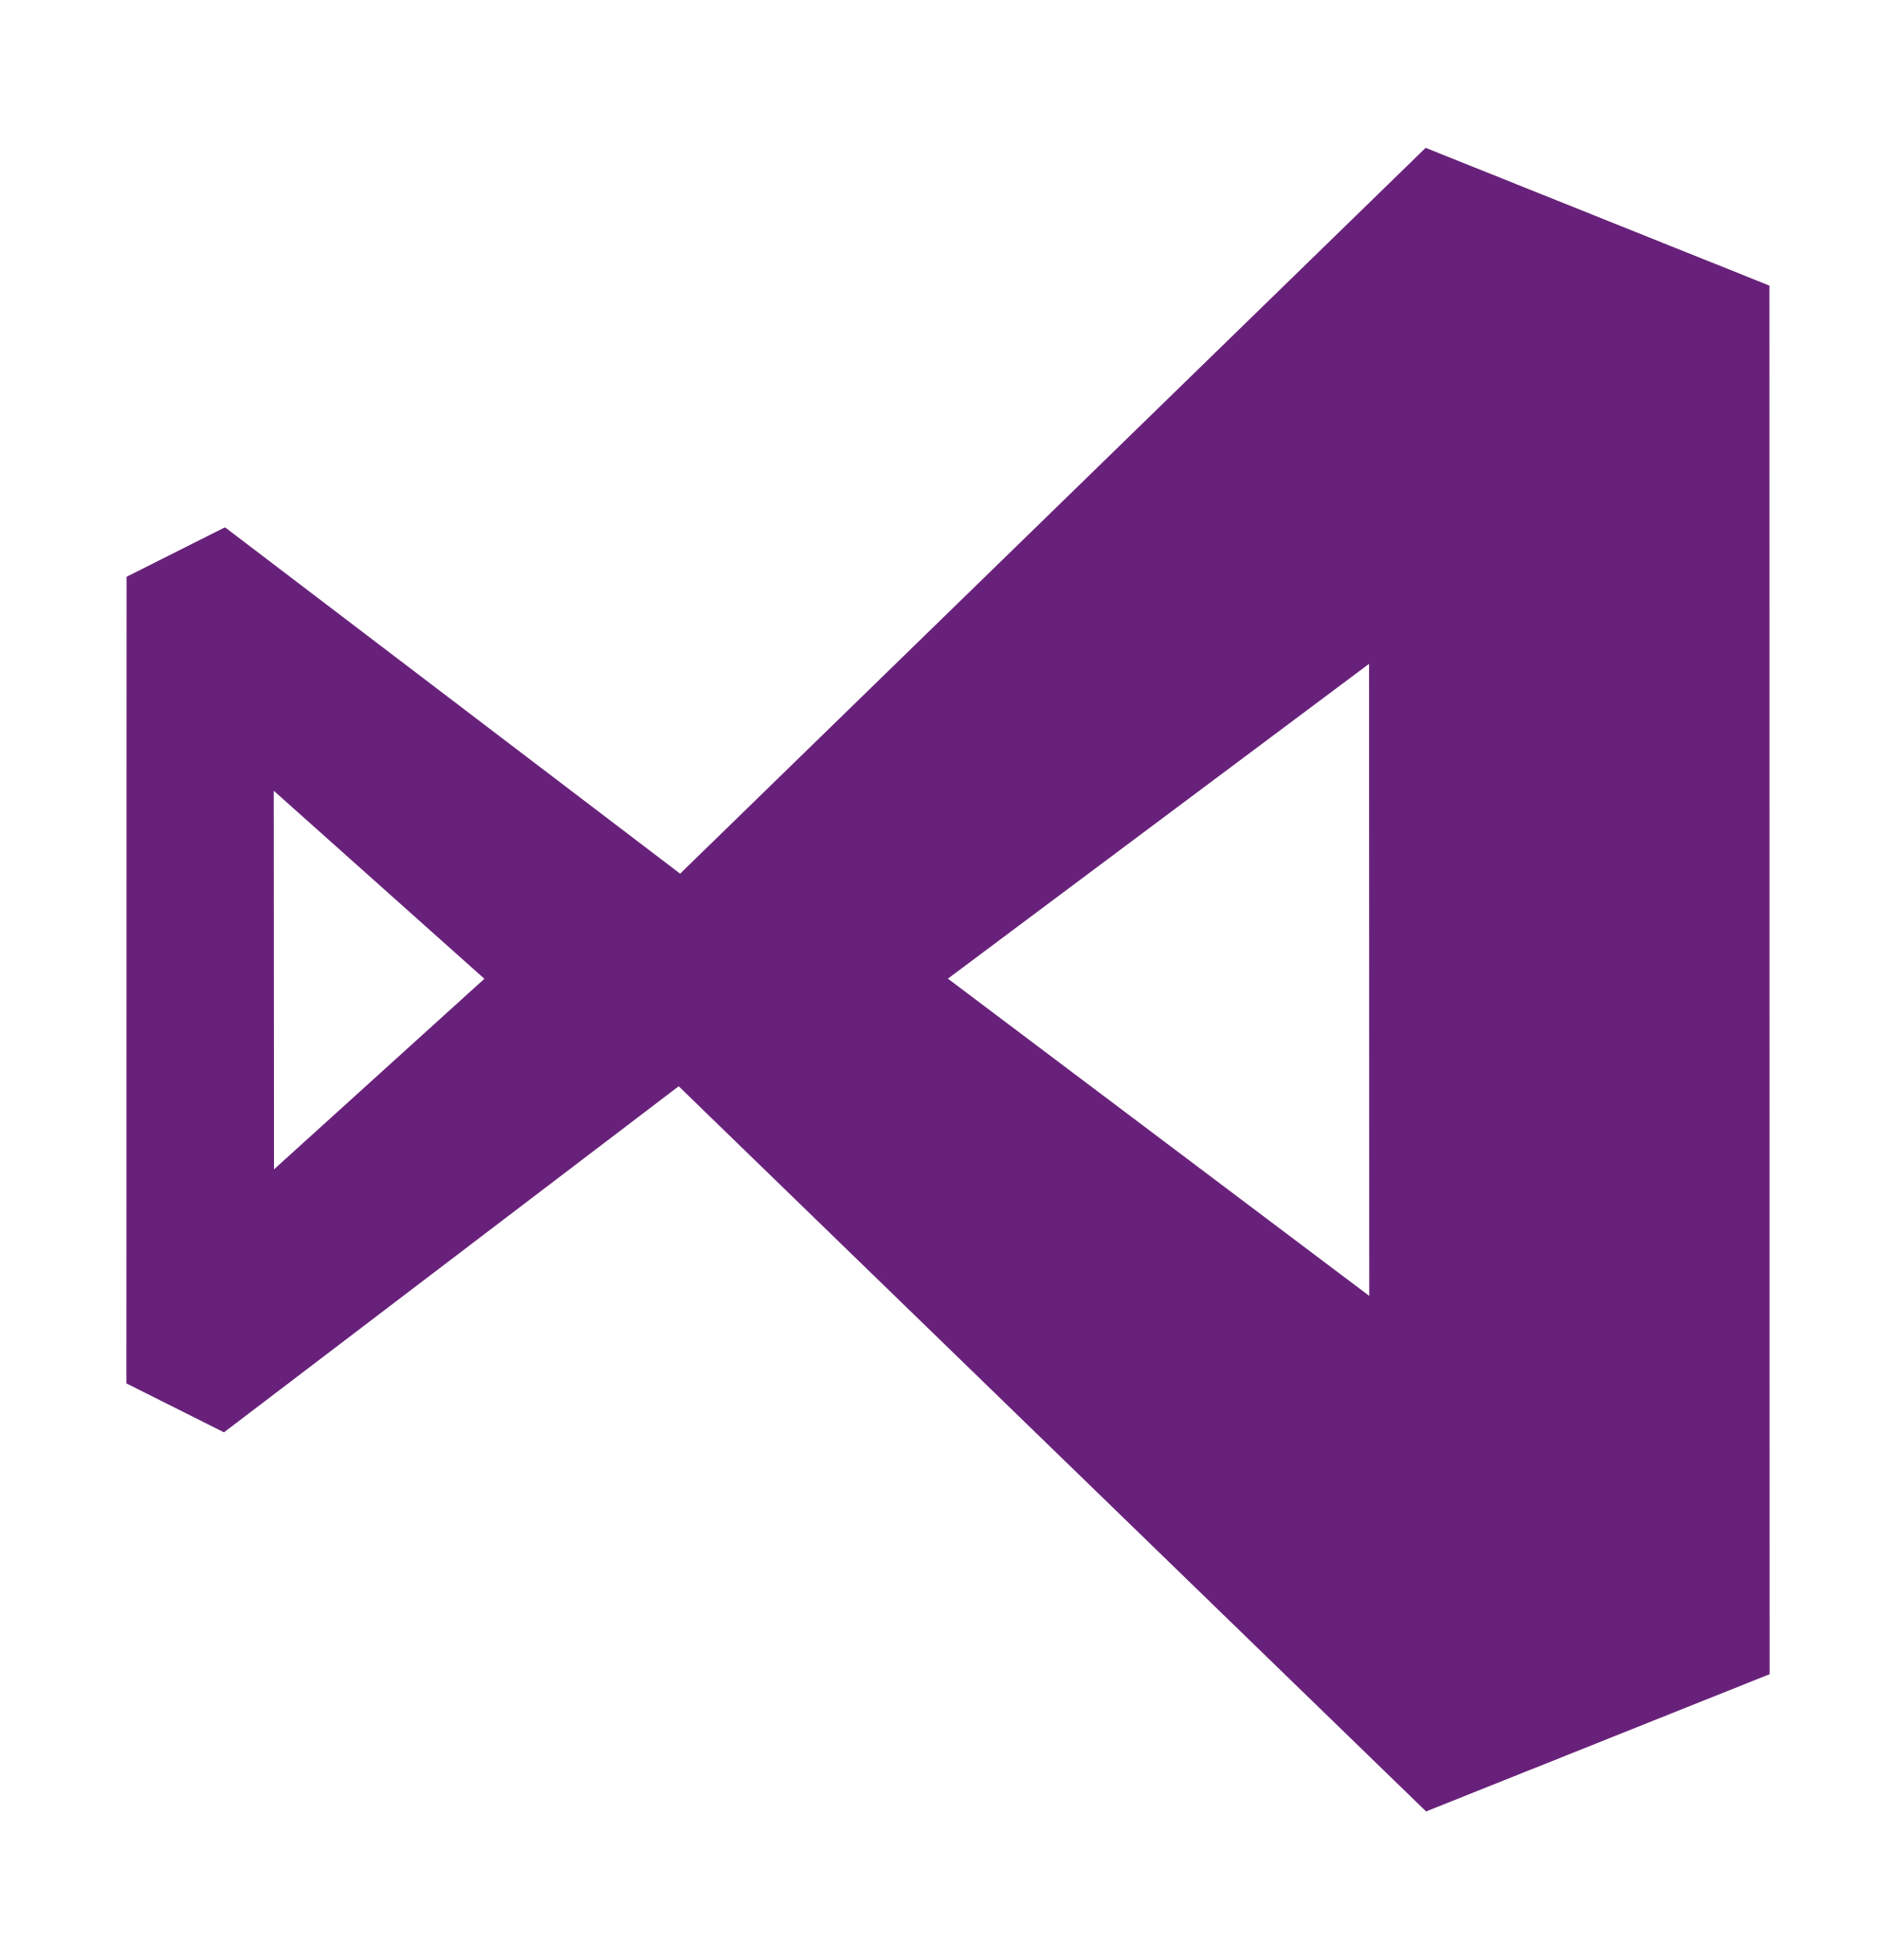 current visual studio logo